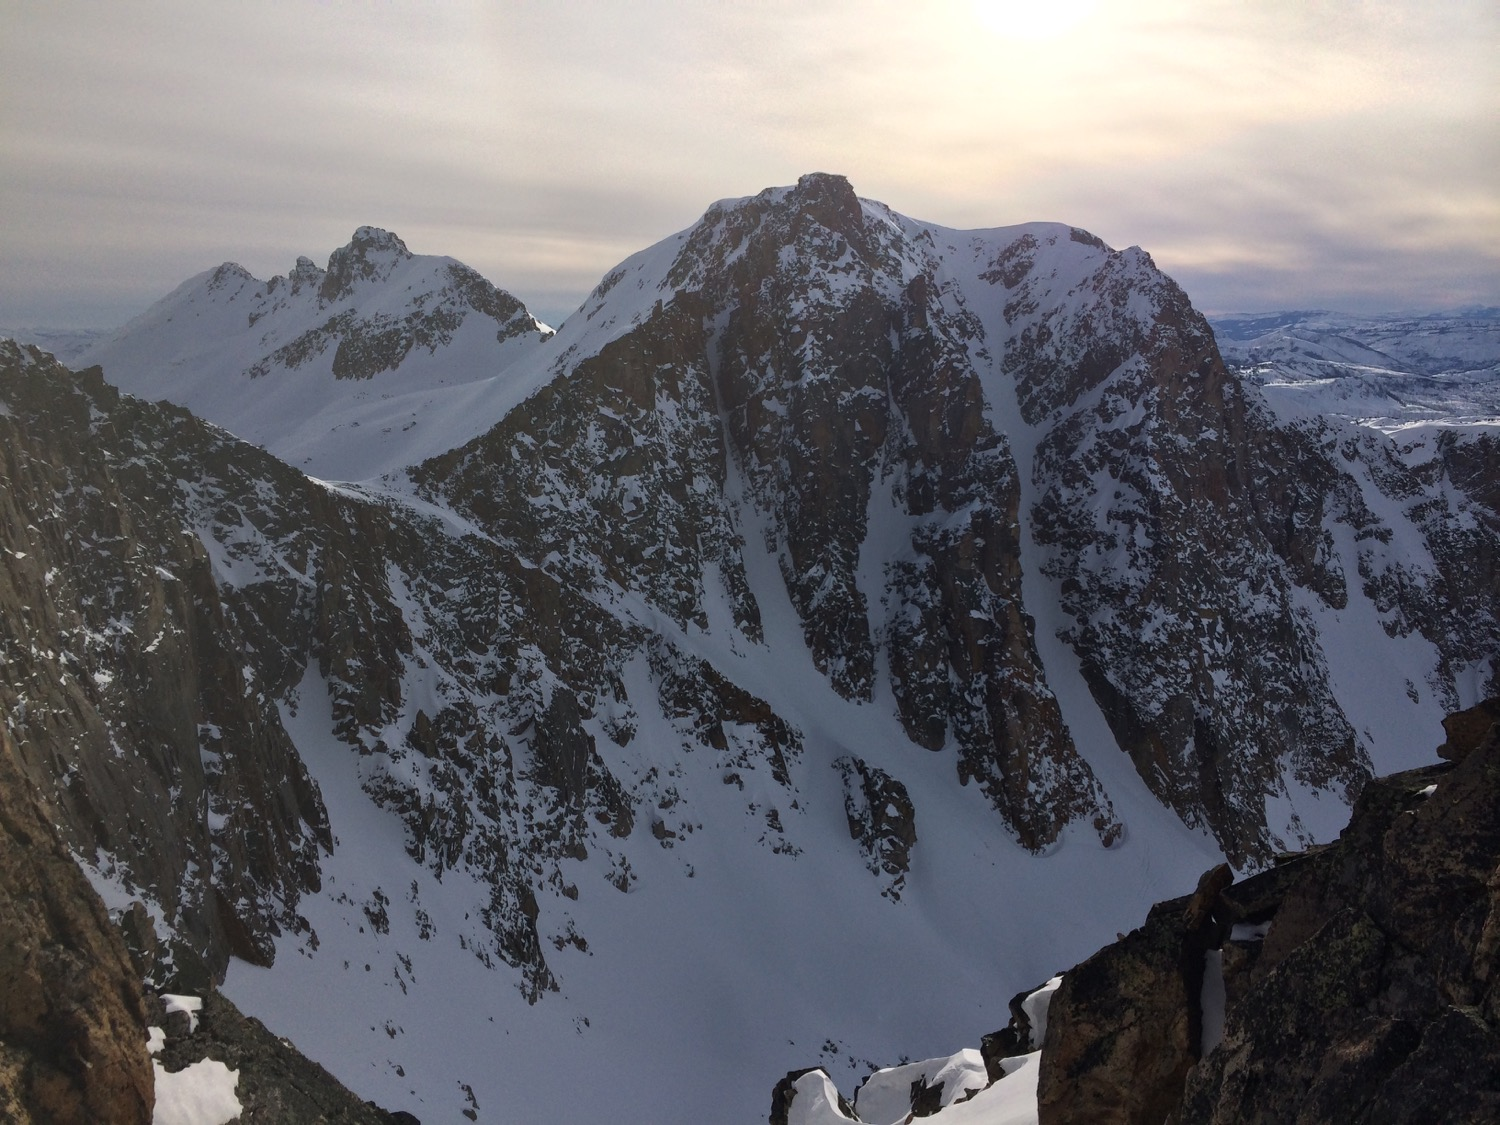 A couloir outside of Cooke City, Montana. (Photo by Emily Stifler Wolfe)